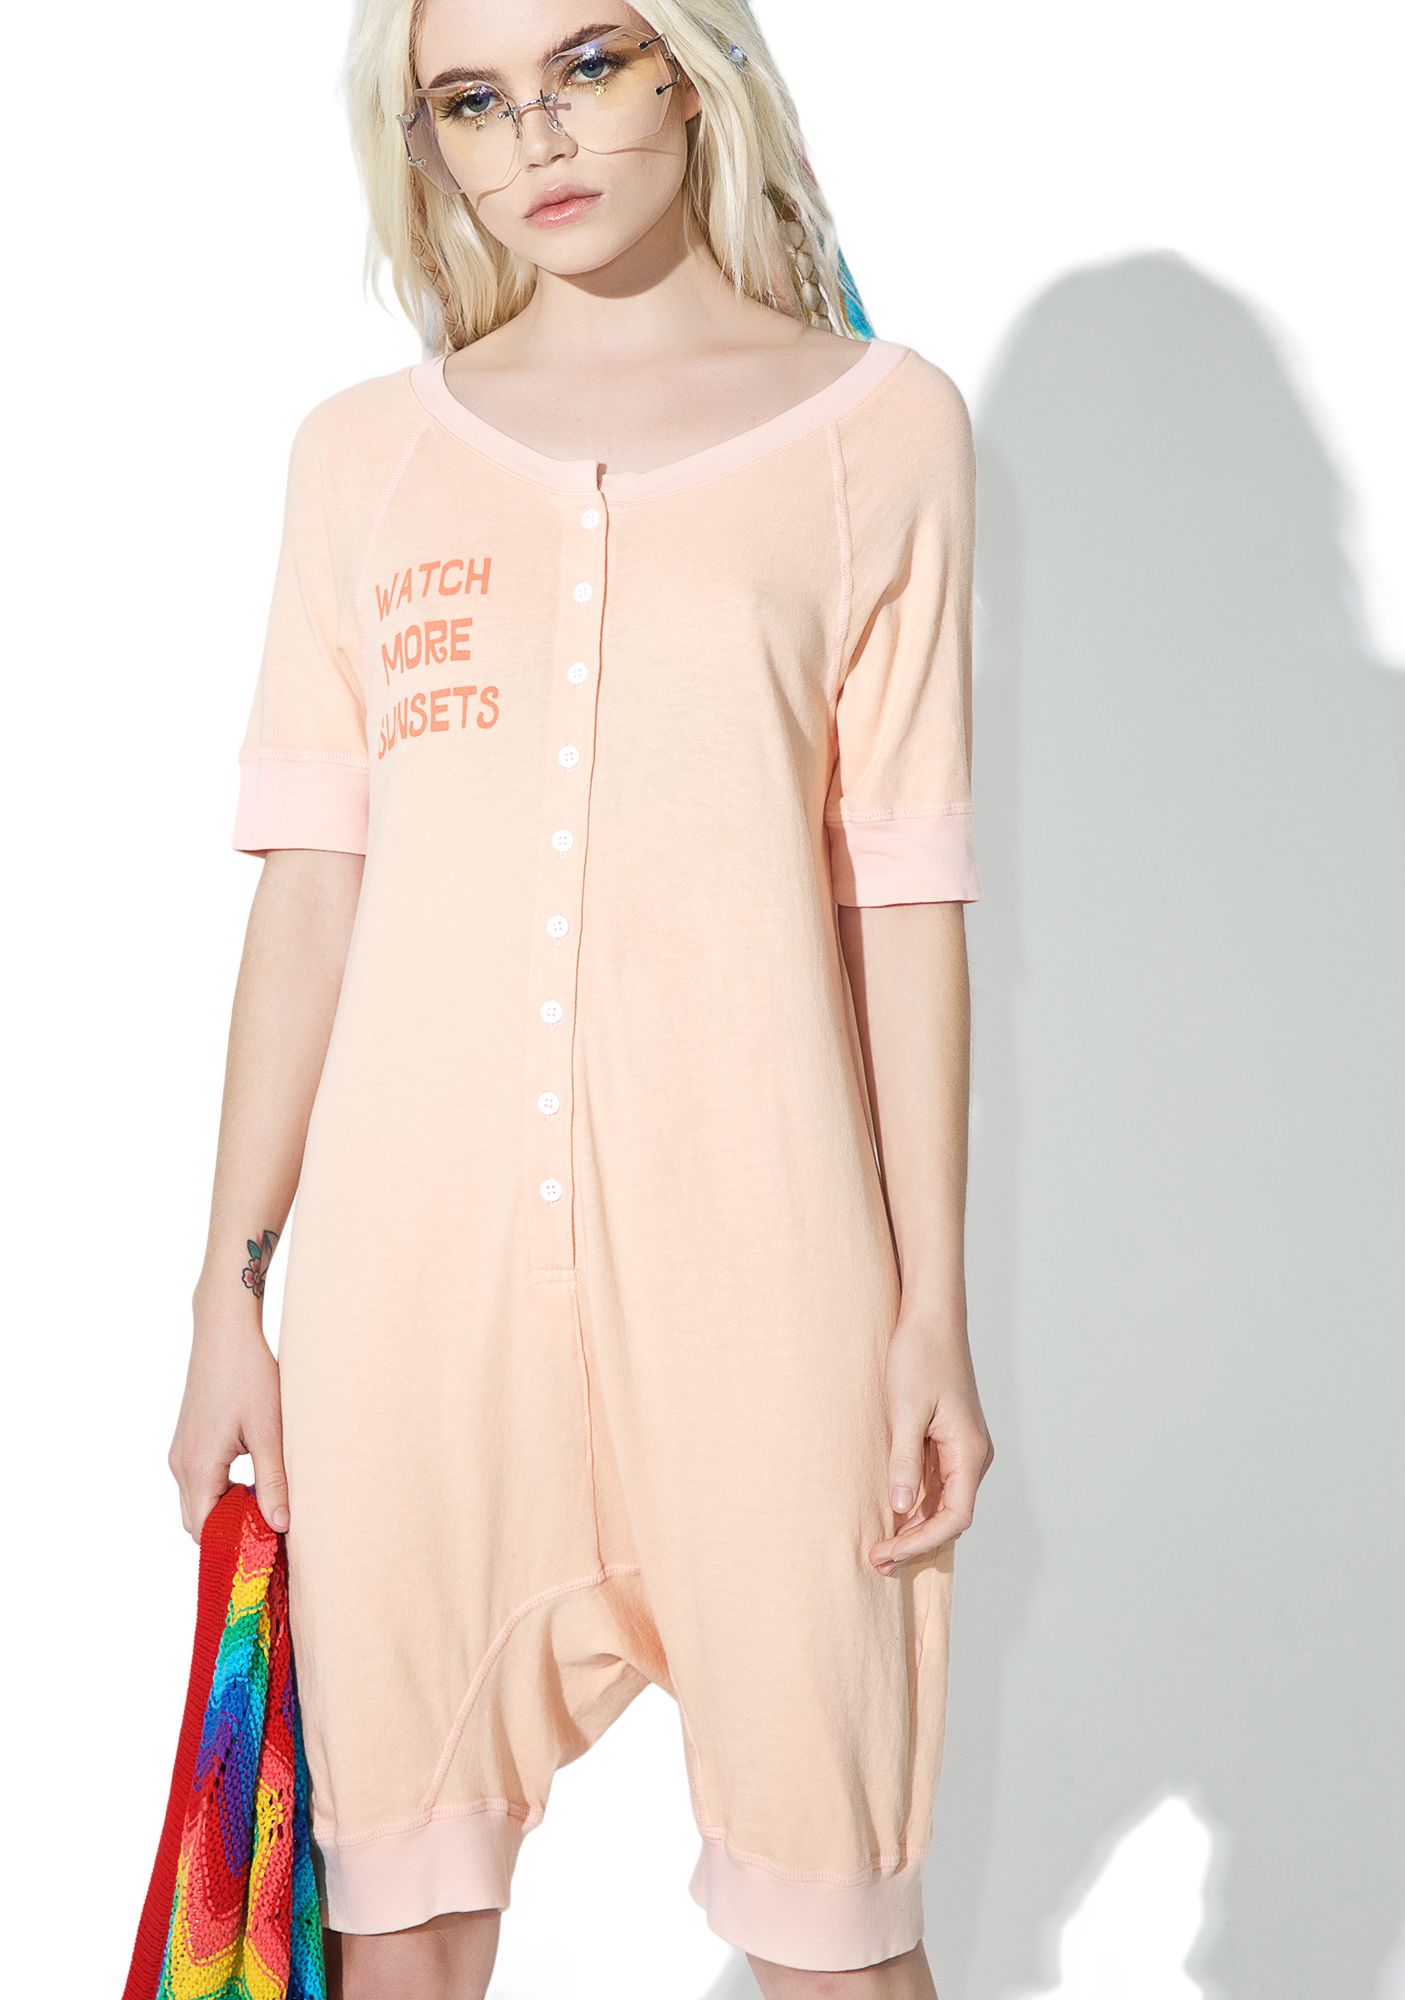 Daydream Nation Peach Sunsets Suit